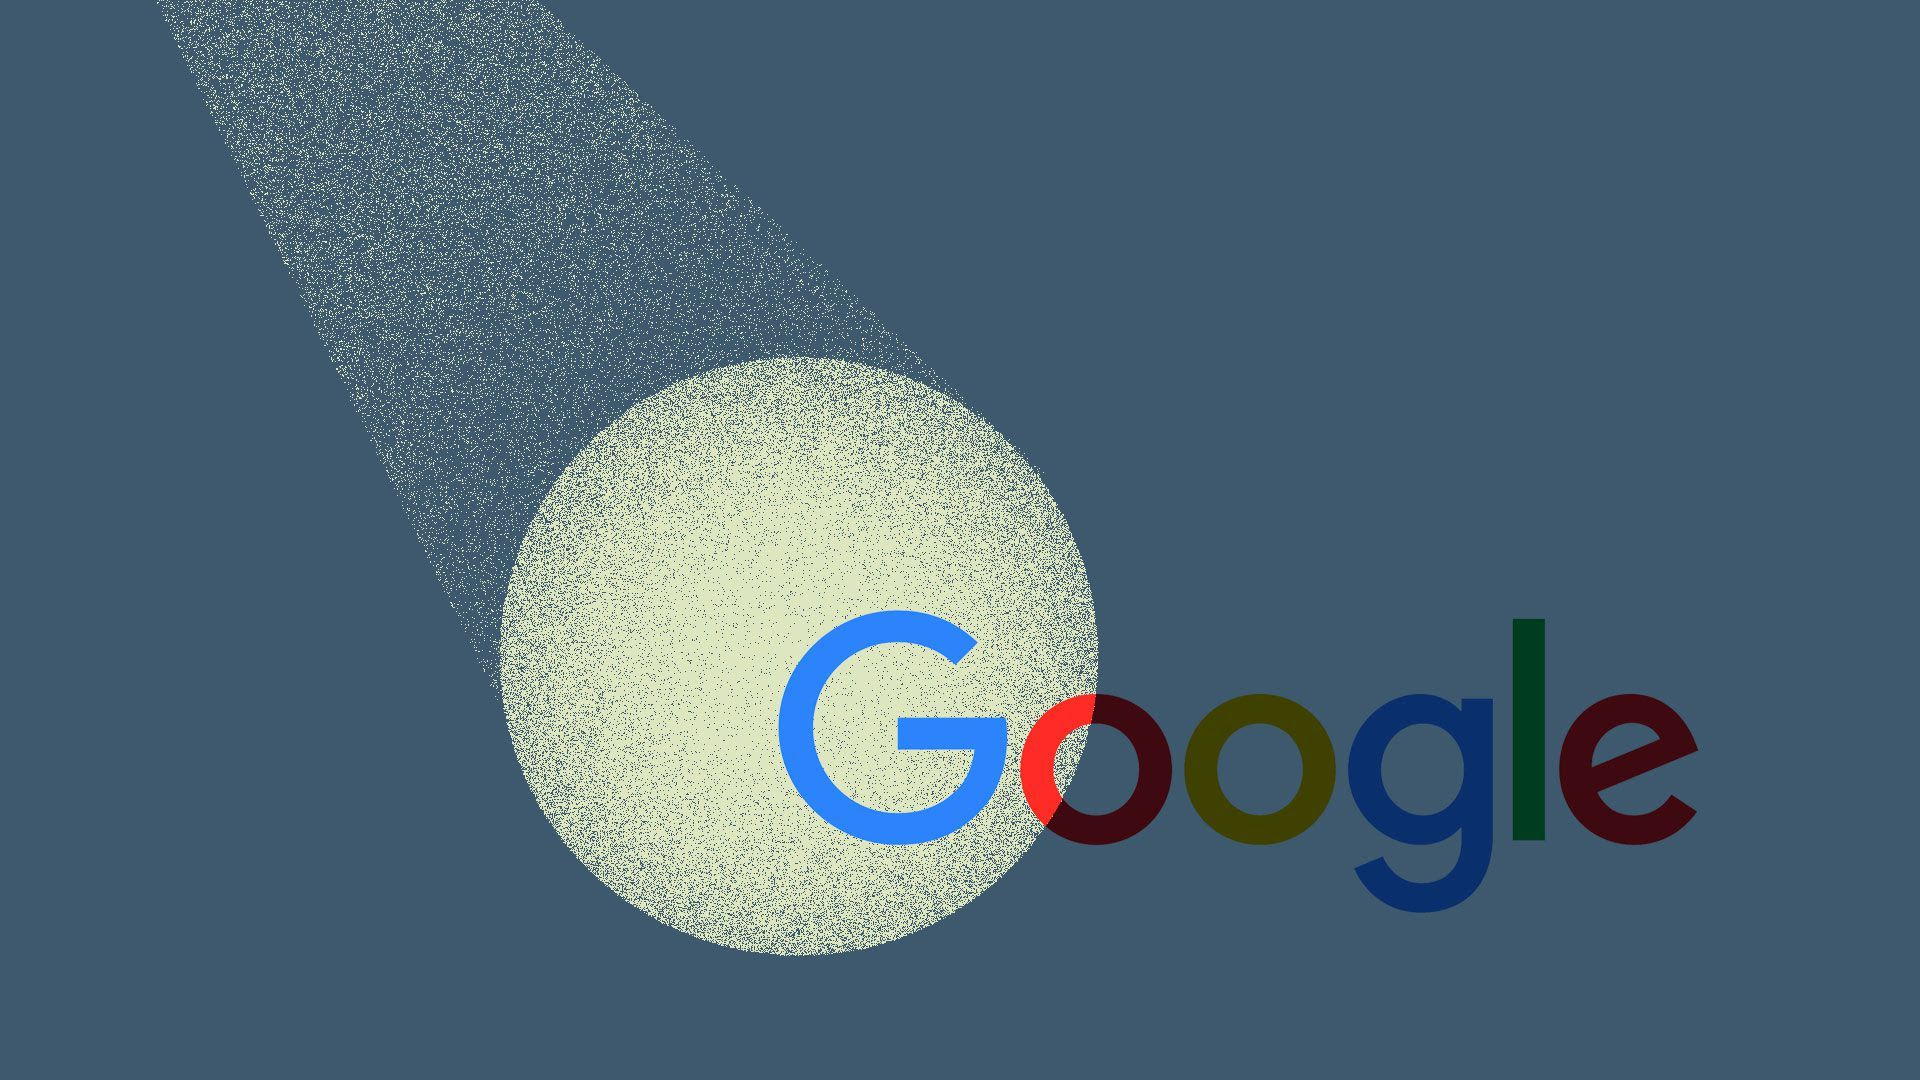 Google is in the spotlight